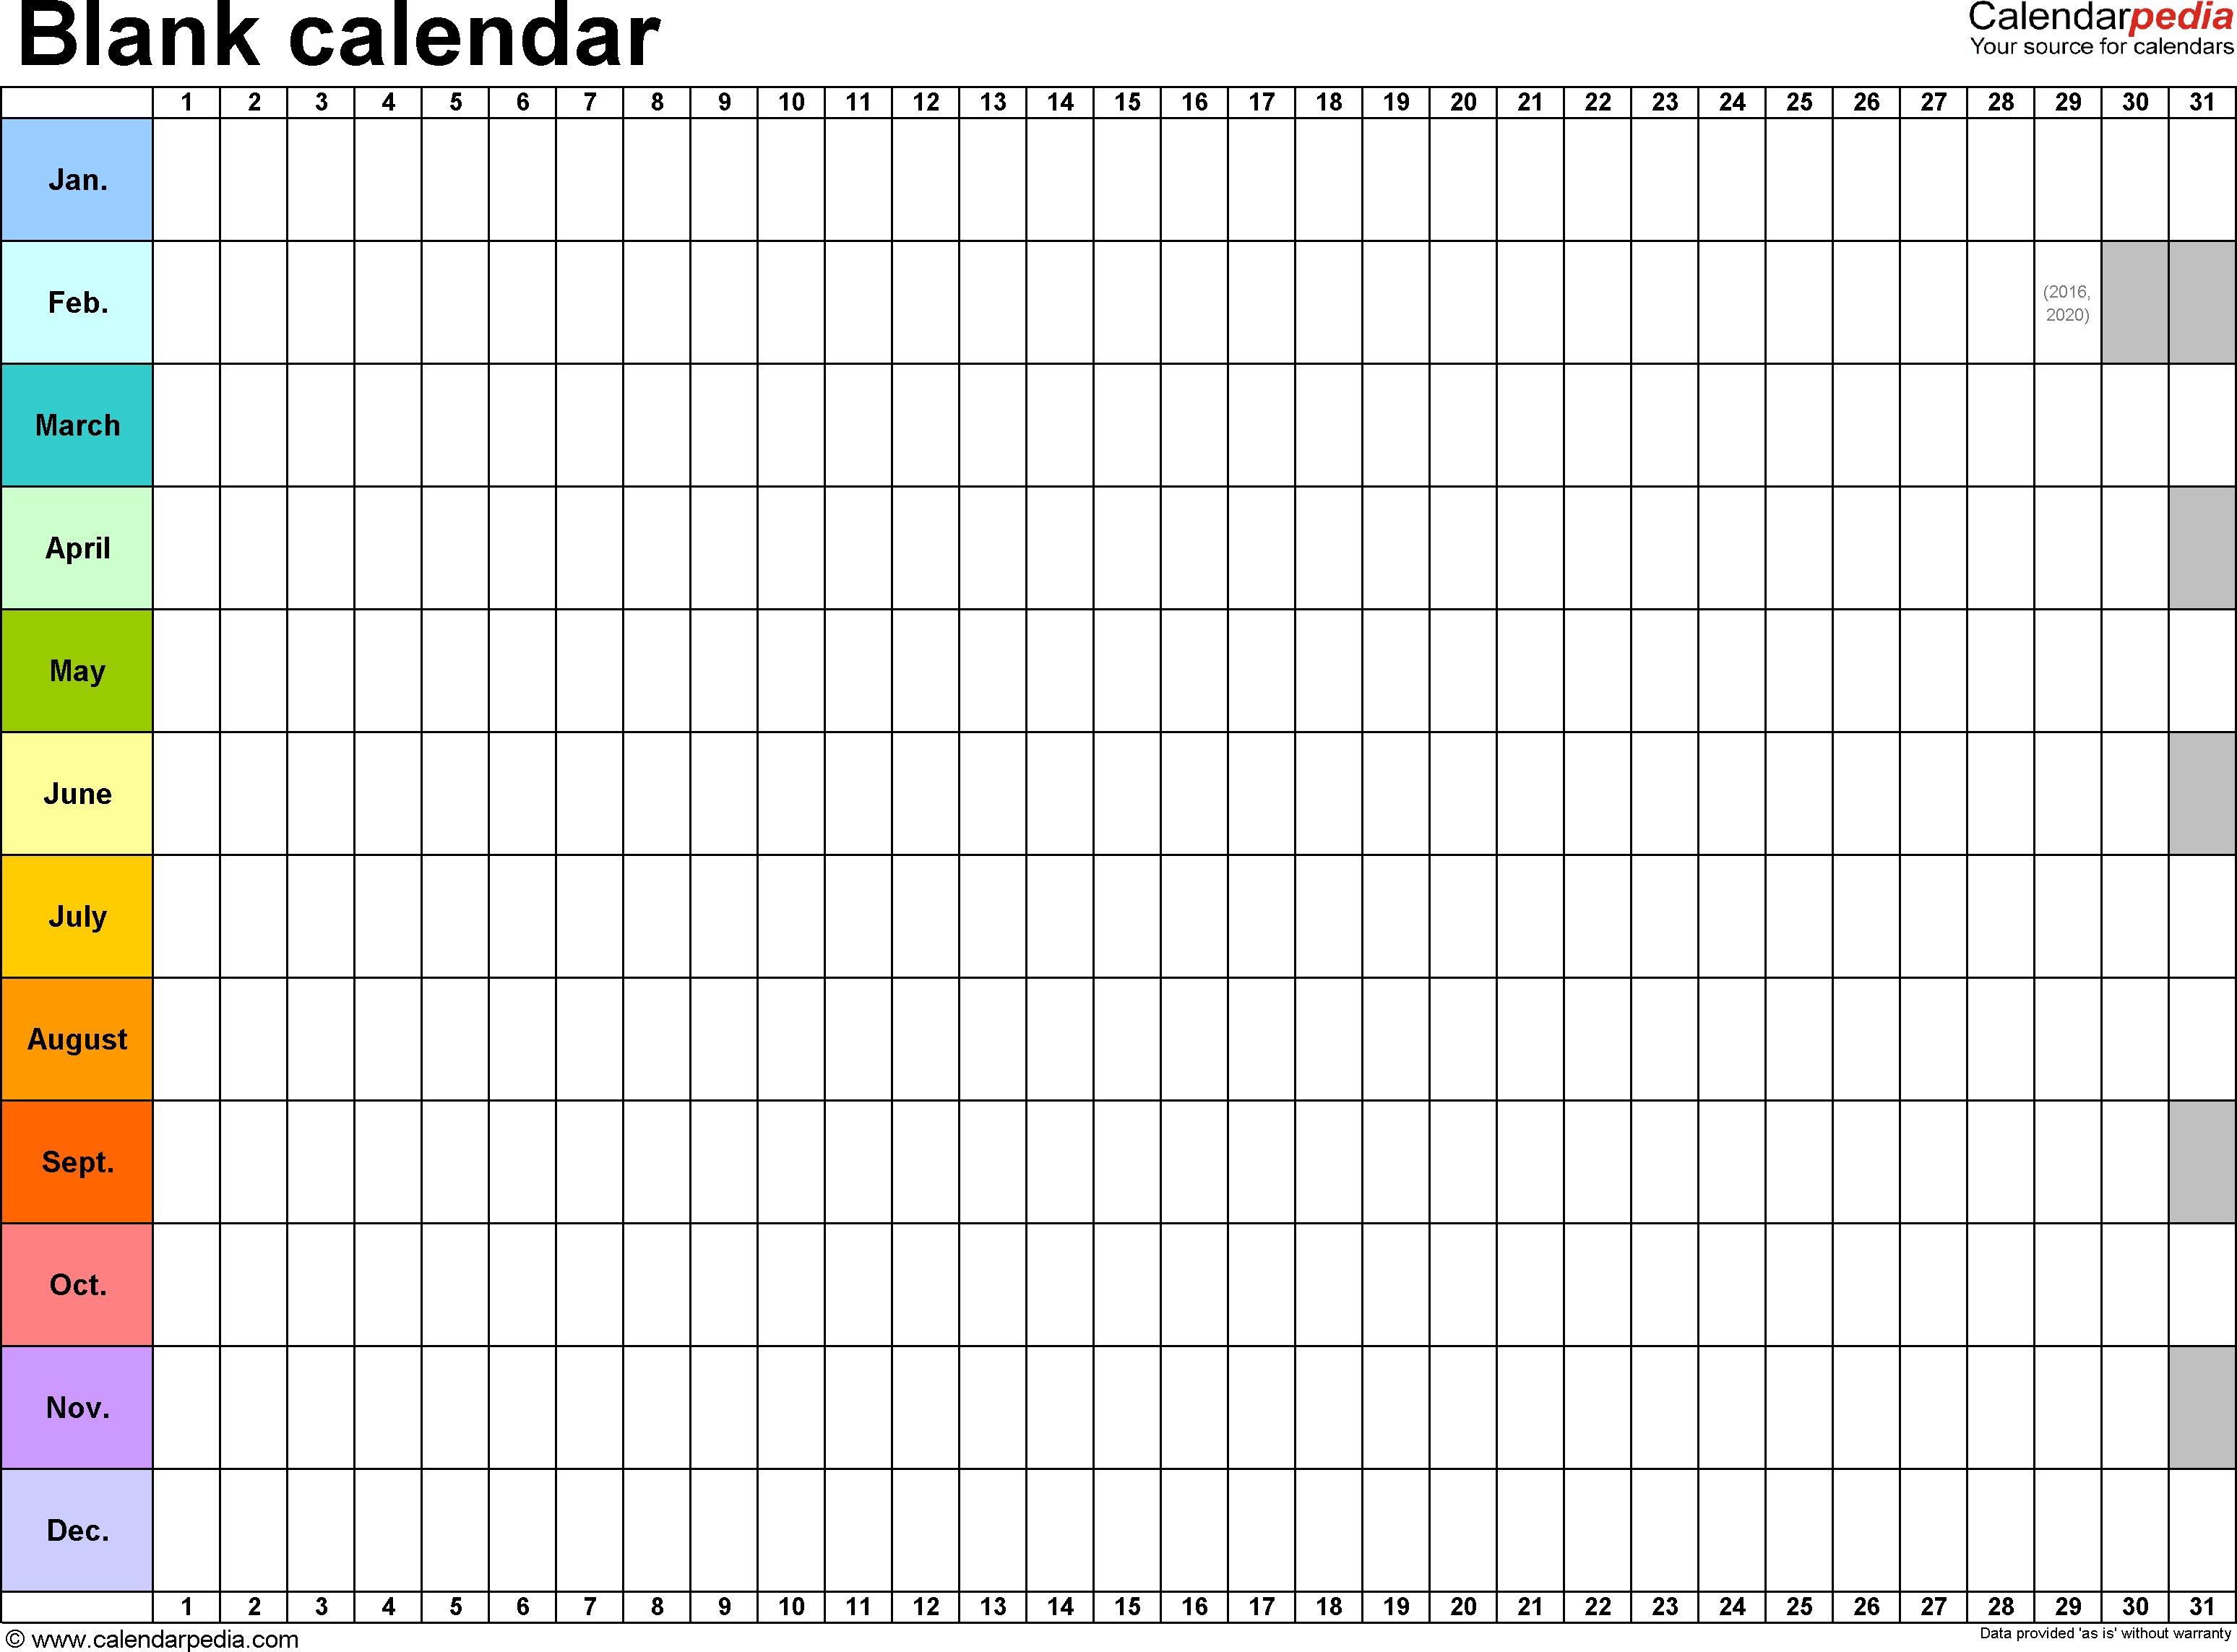 Blank Calendar - 9 Free Printable Microsoft Word Templates intended for Blank Printable Monthly Calendar